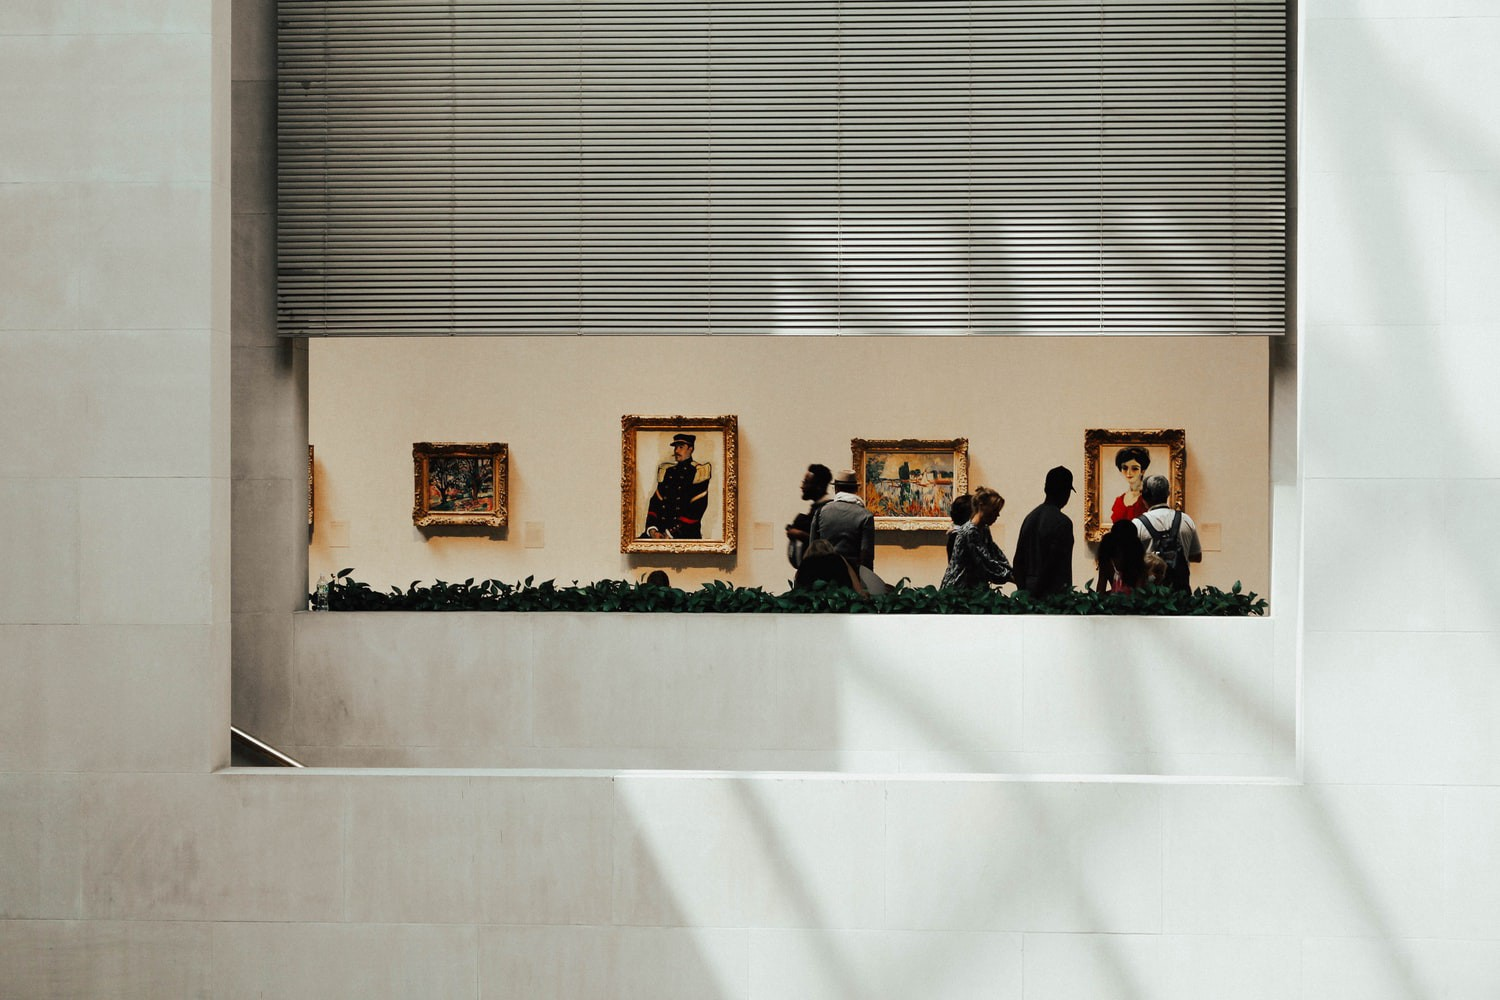 Museum visitors walking through a gallery